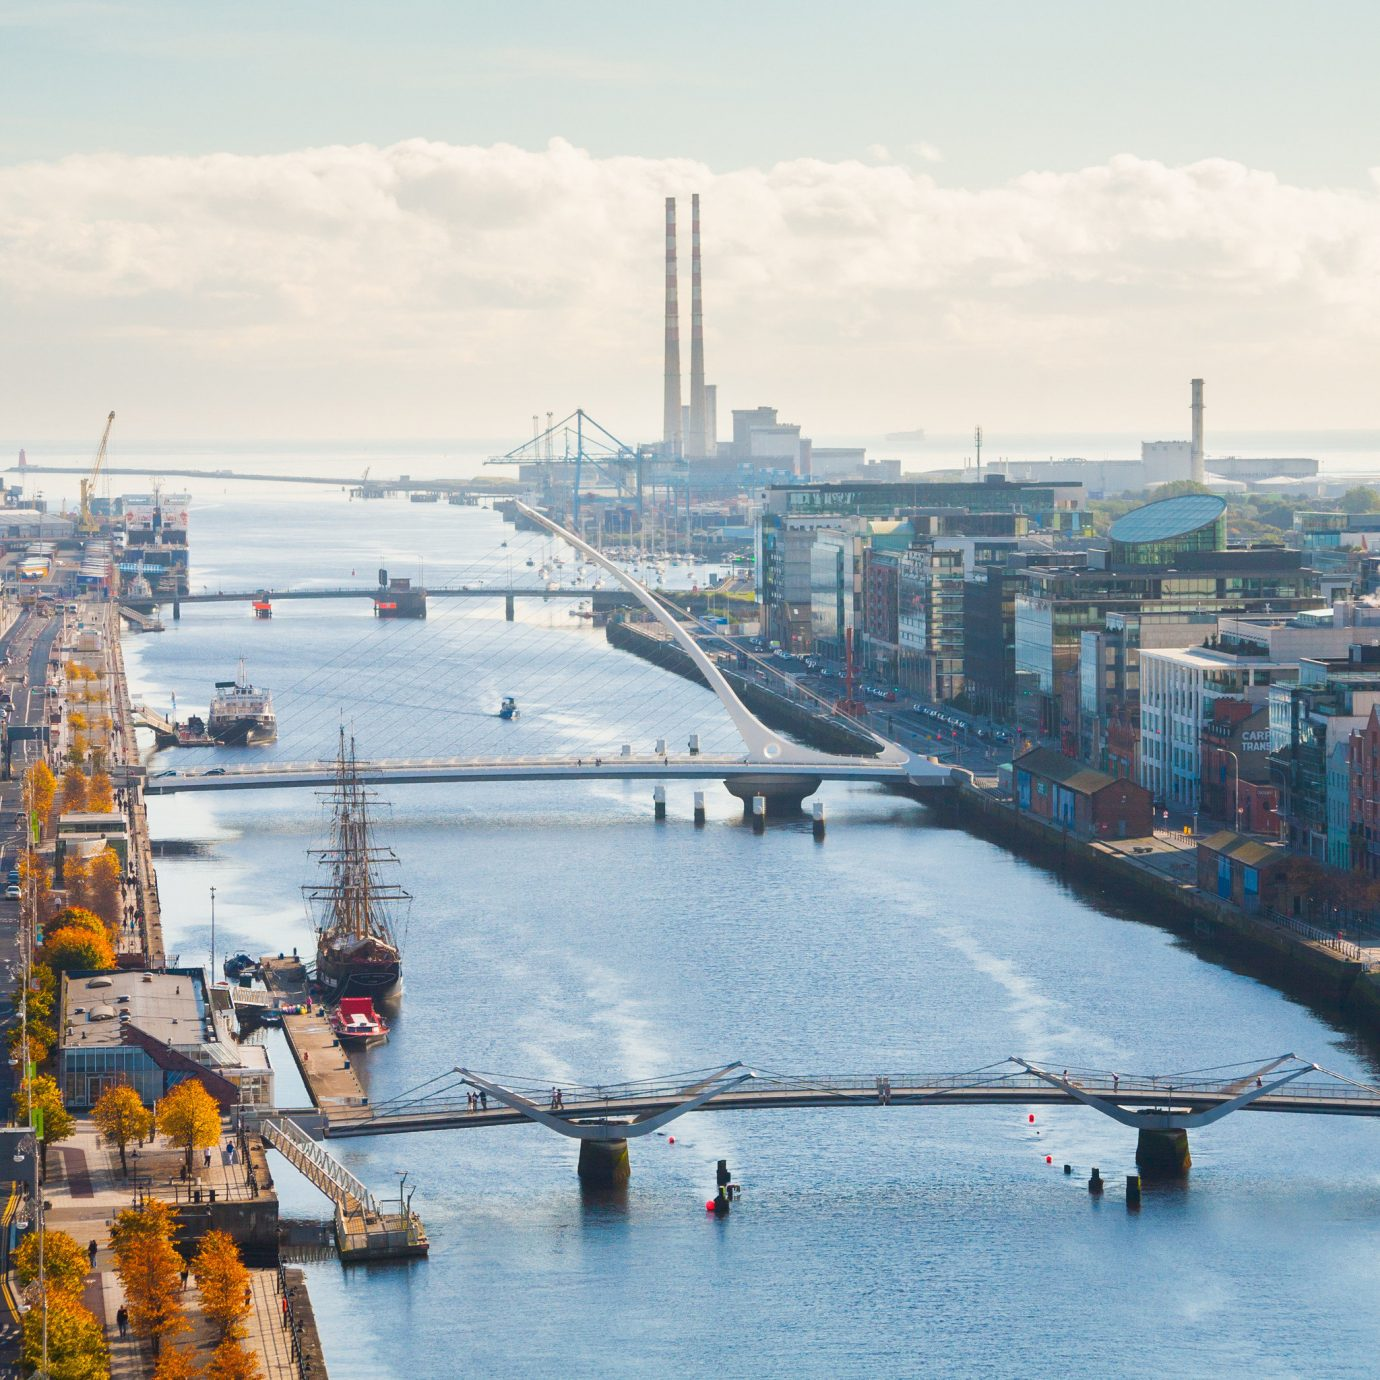 Dublin Hotels Ireland sky outdoor water waterway City urban area metropolitan area Boat cityscape scene skyline port metropolis daytime bird's eye view River channel bridge Harbor Sea horizon fixed link aerial photography Canal day